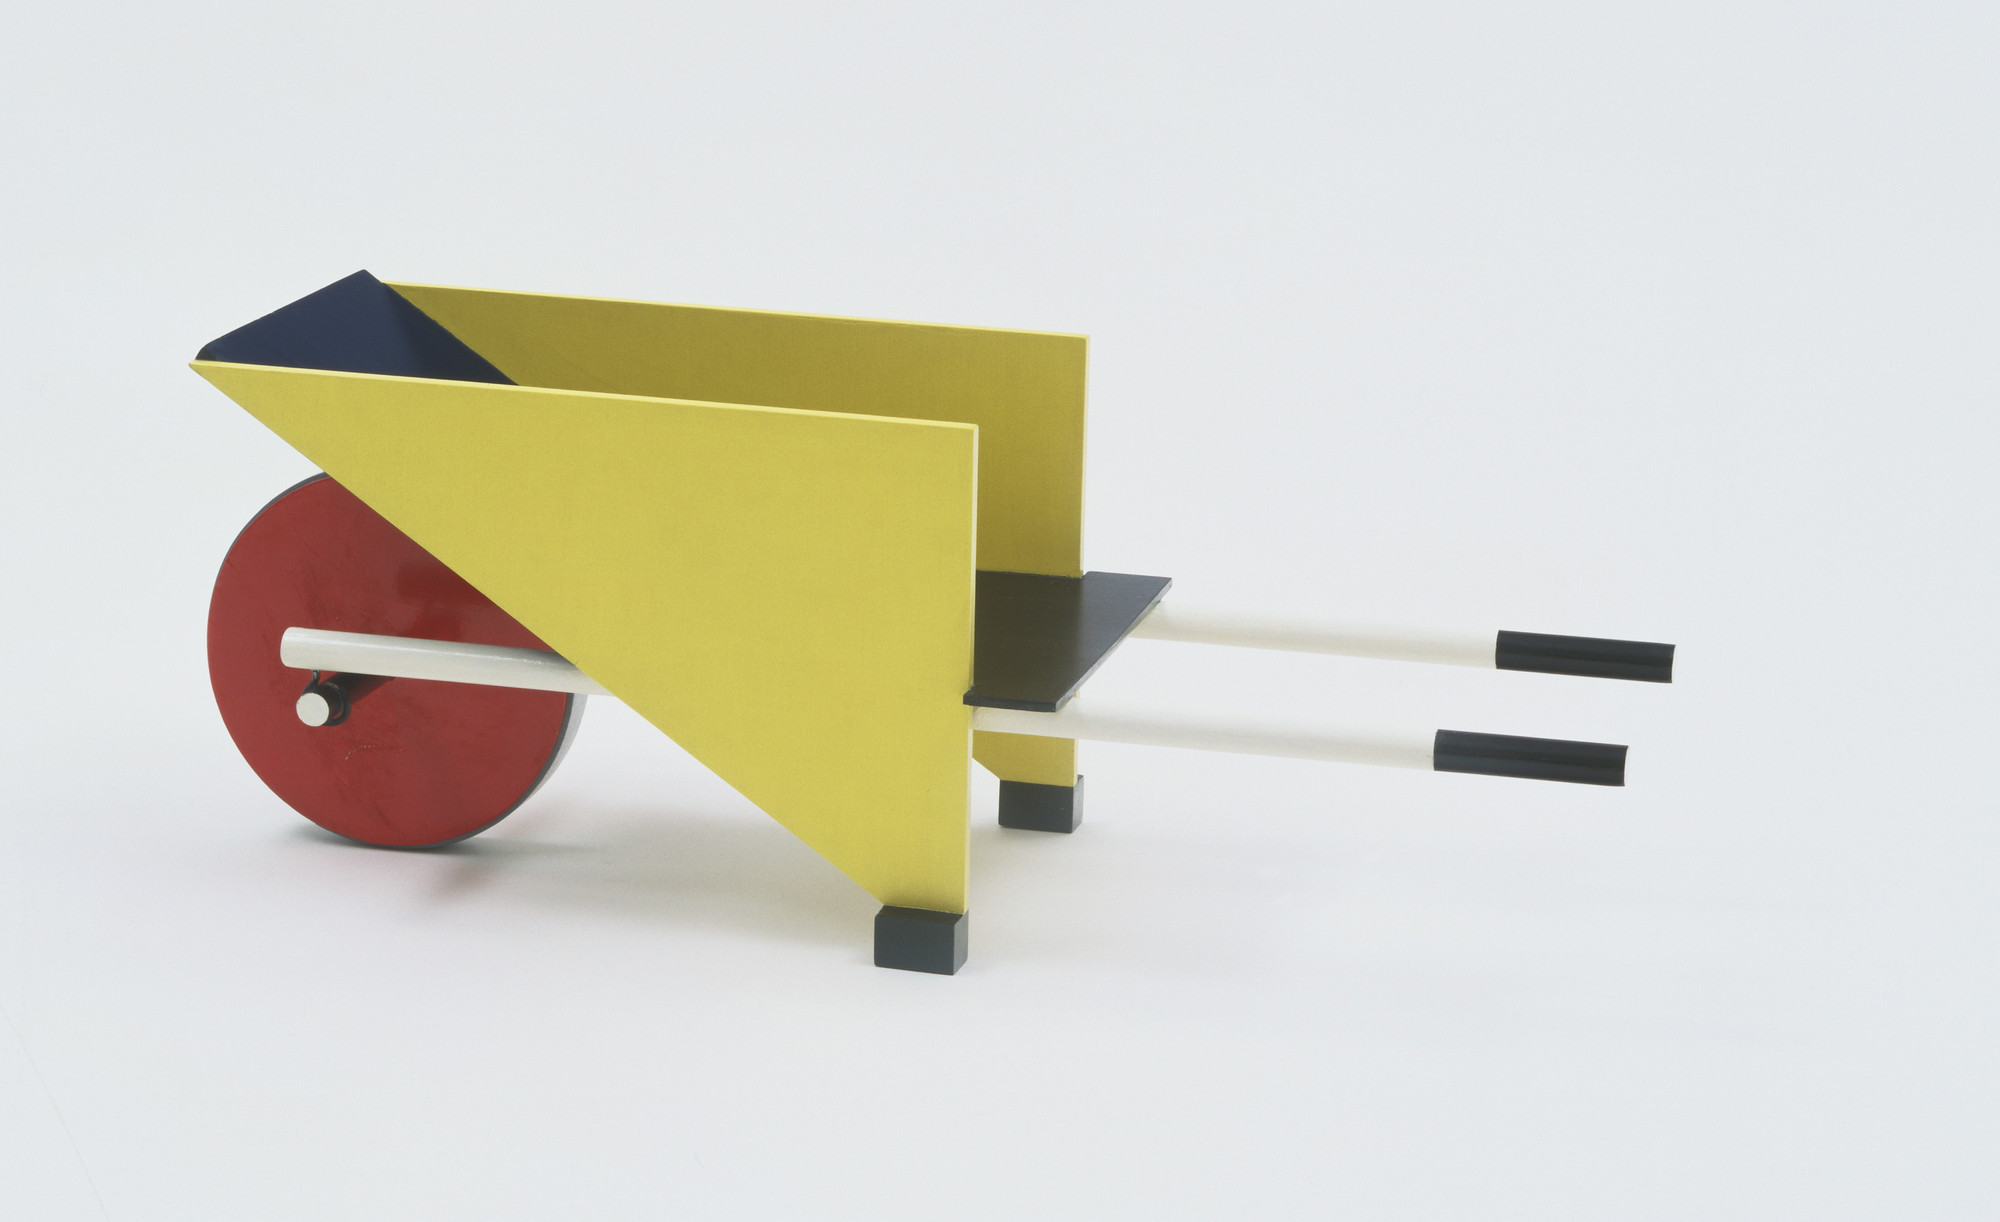 Gerrit Rietveld. Child's Wheelbarrow. 1923